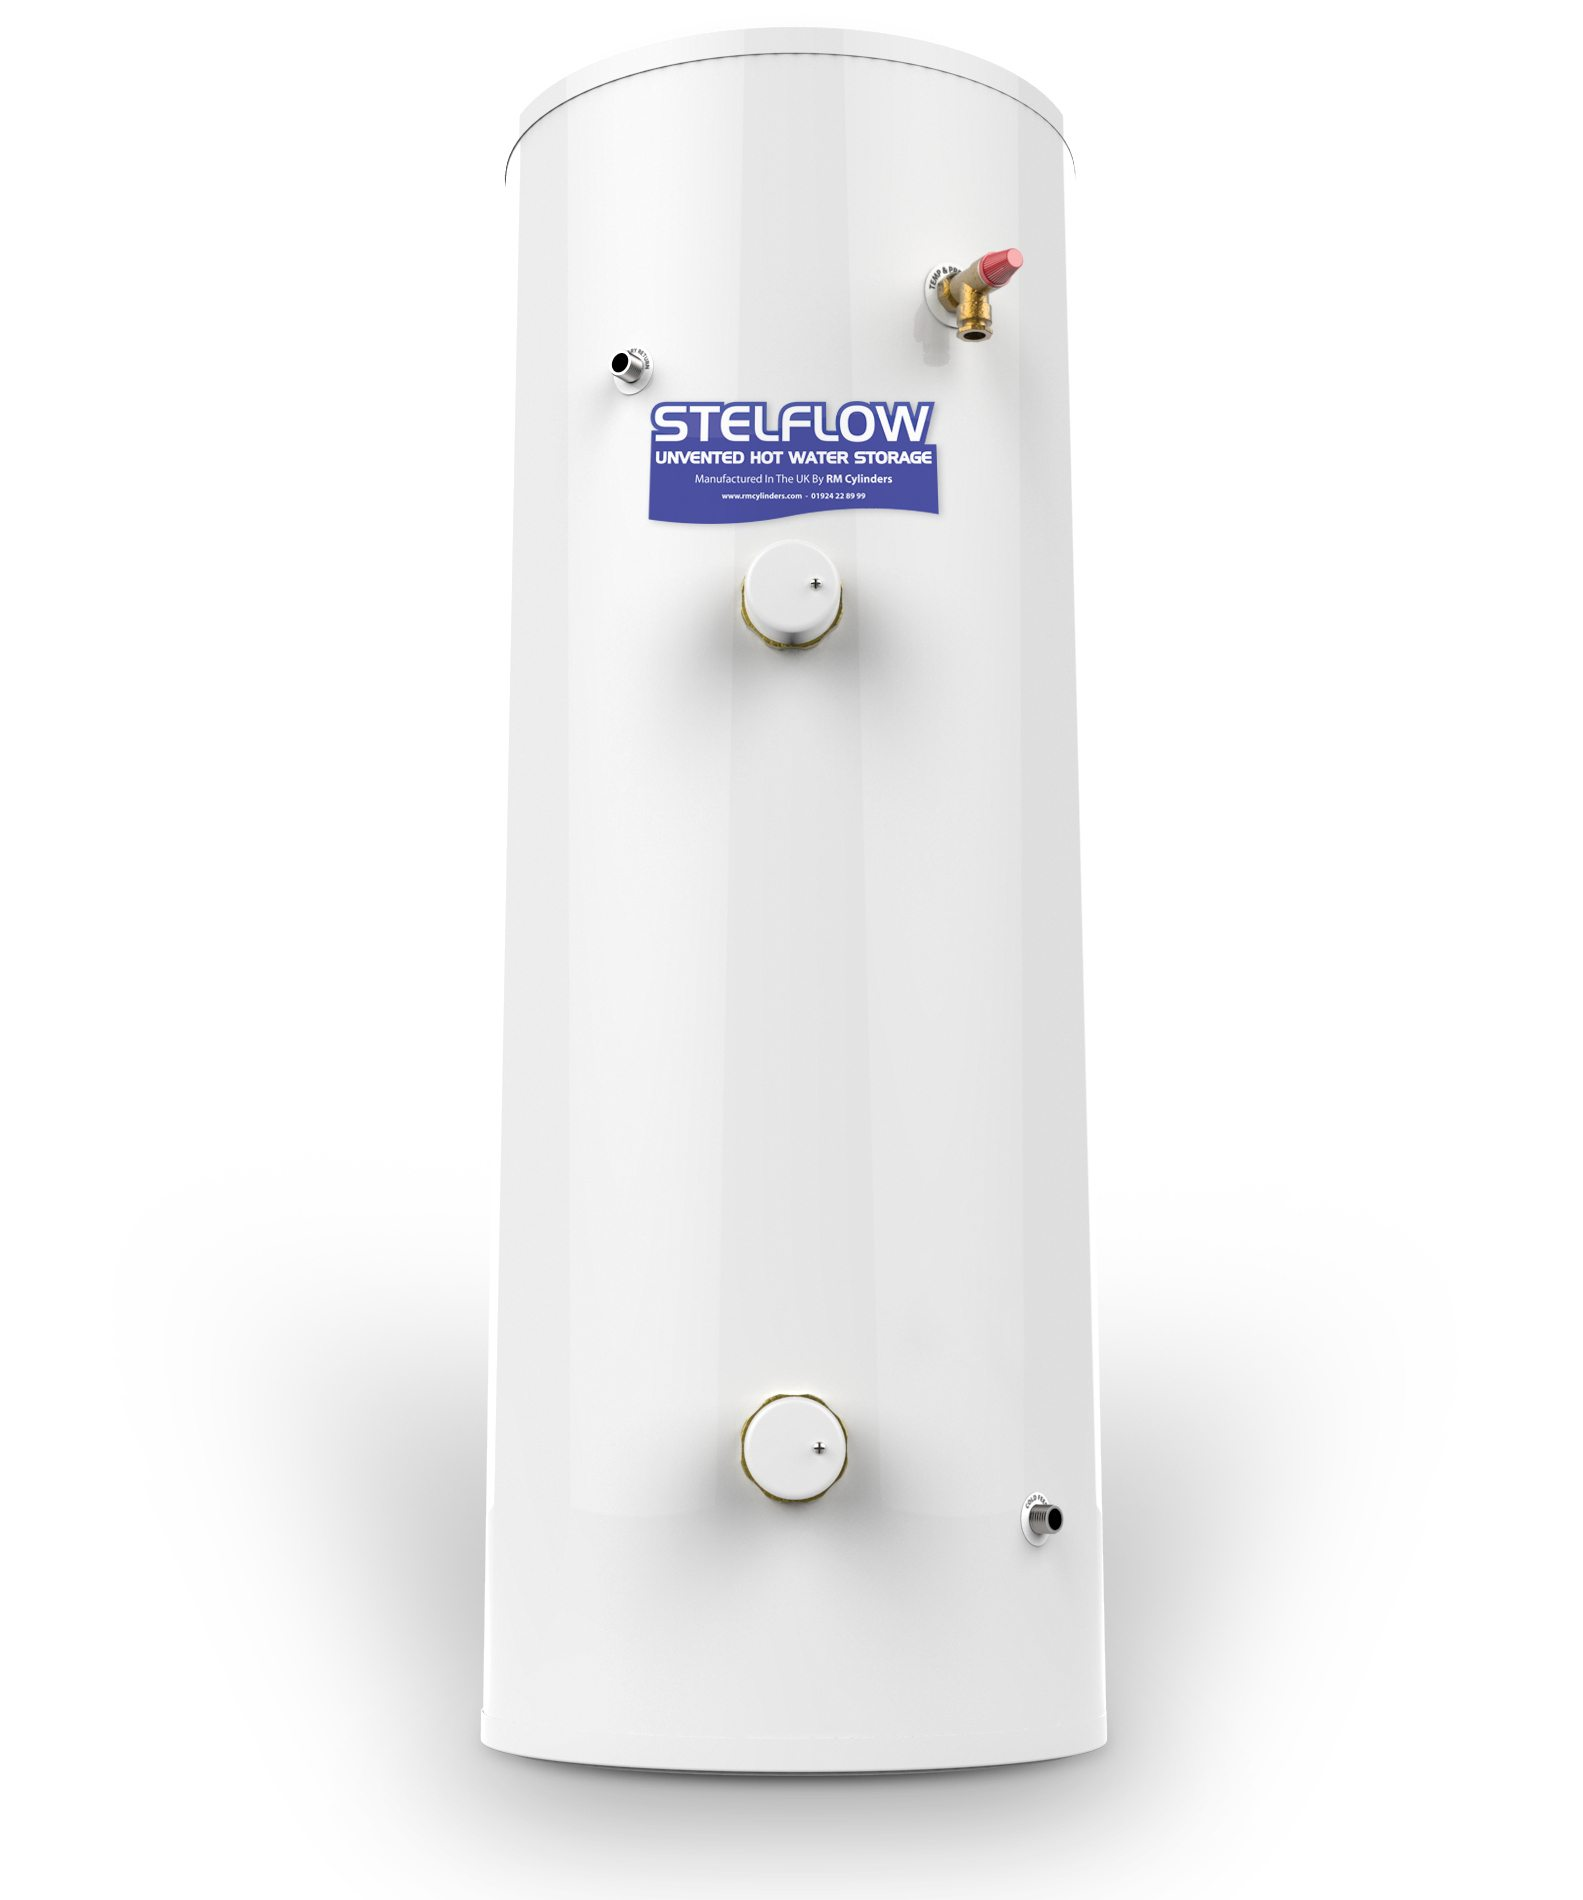 RM Stelflow Unvented Direct Cylinder - Installers Hub Online Shop